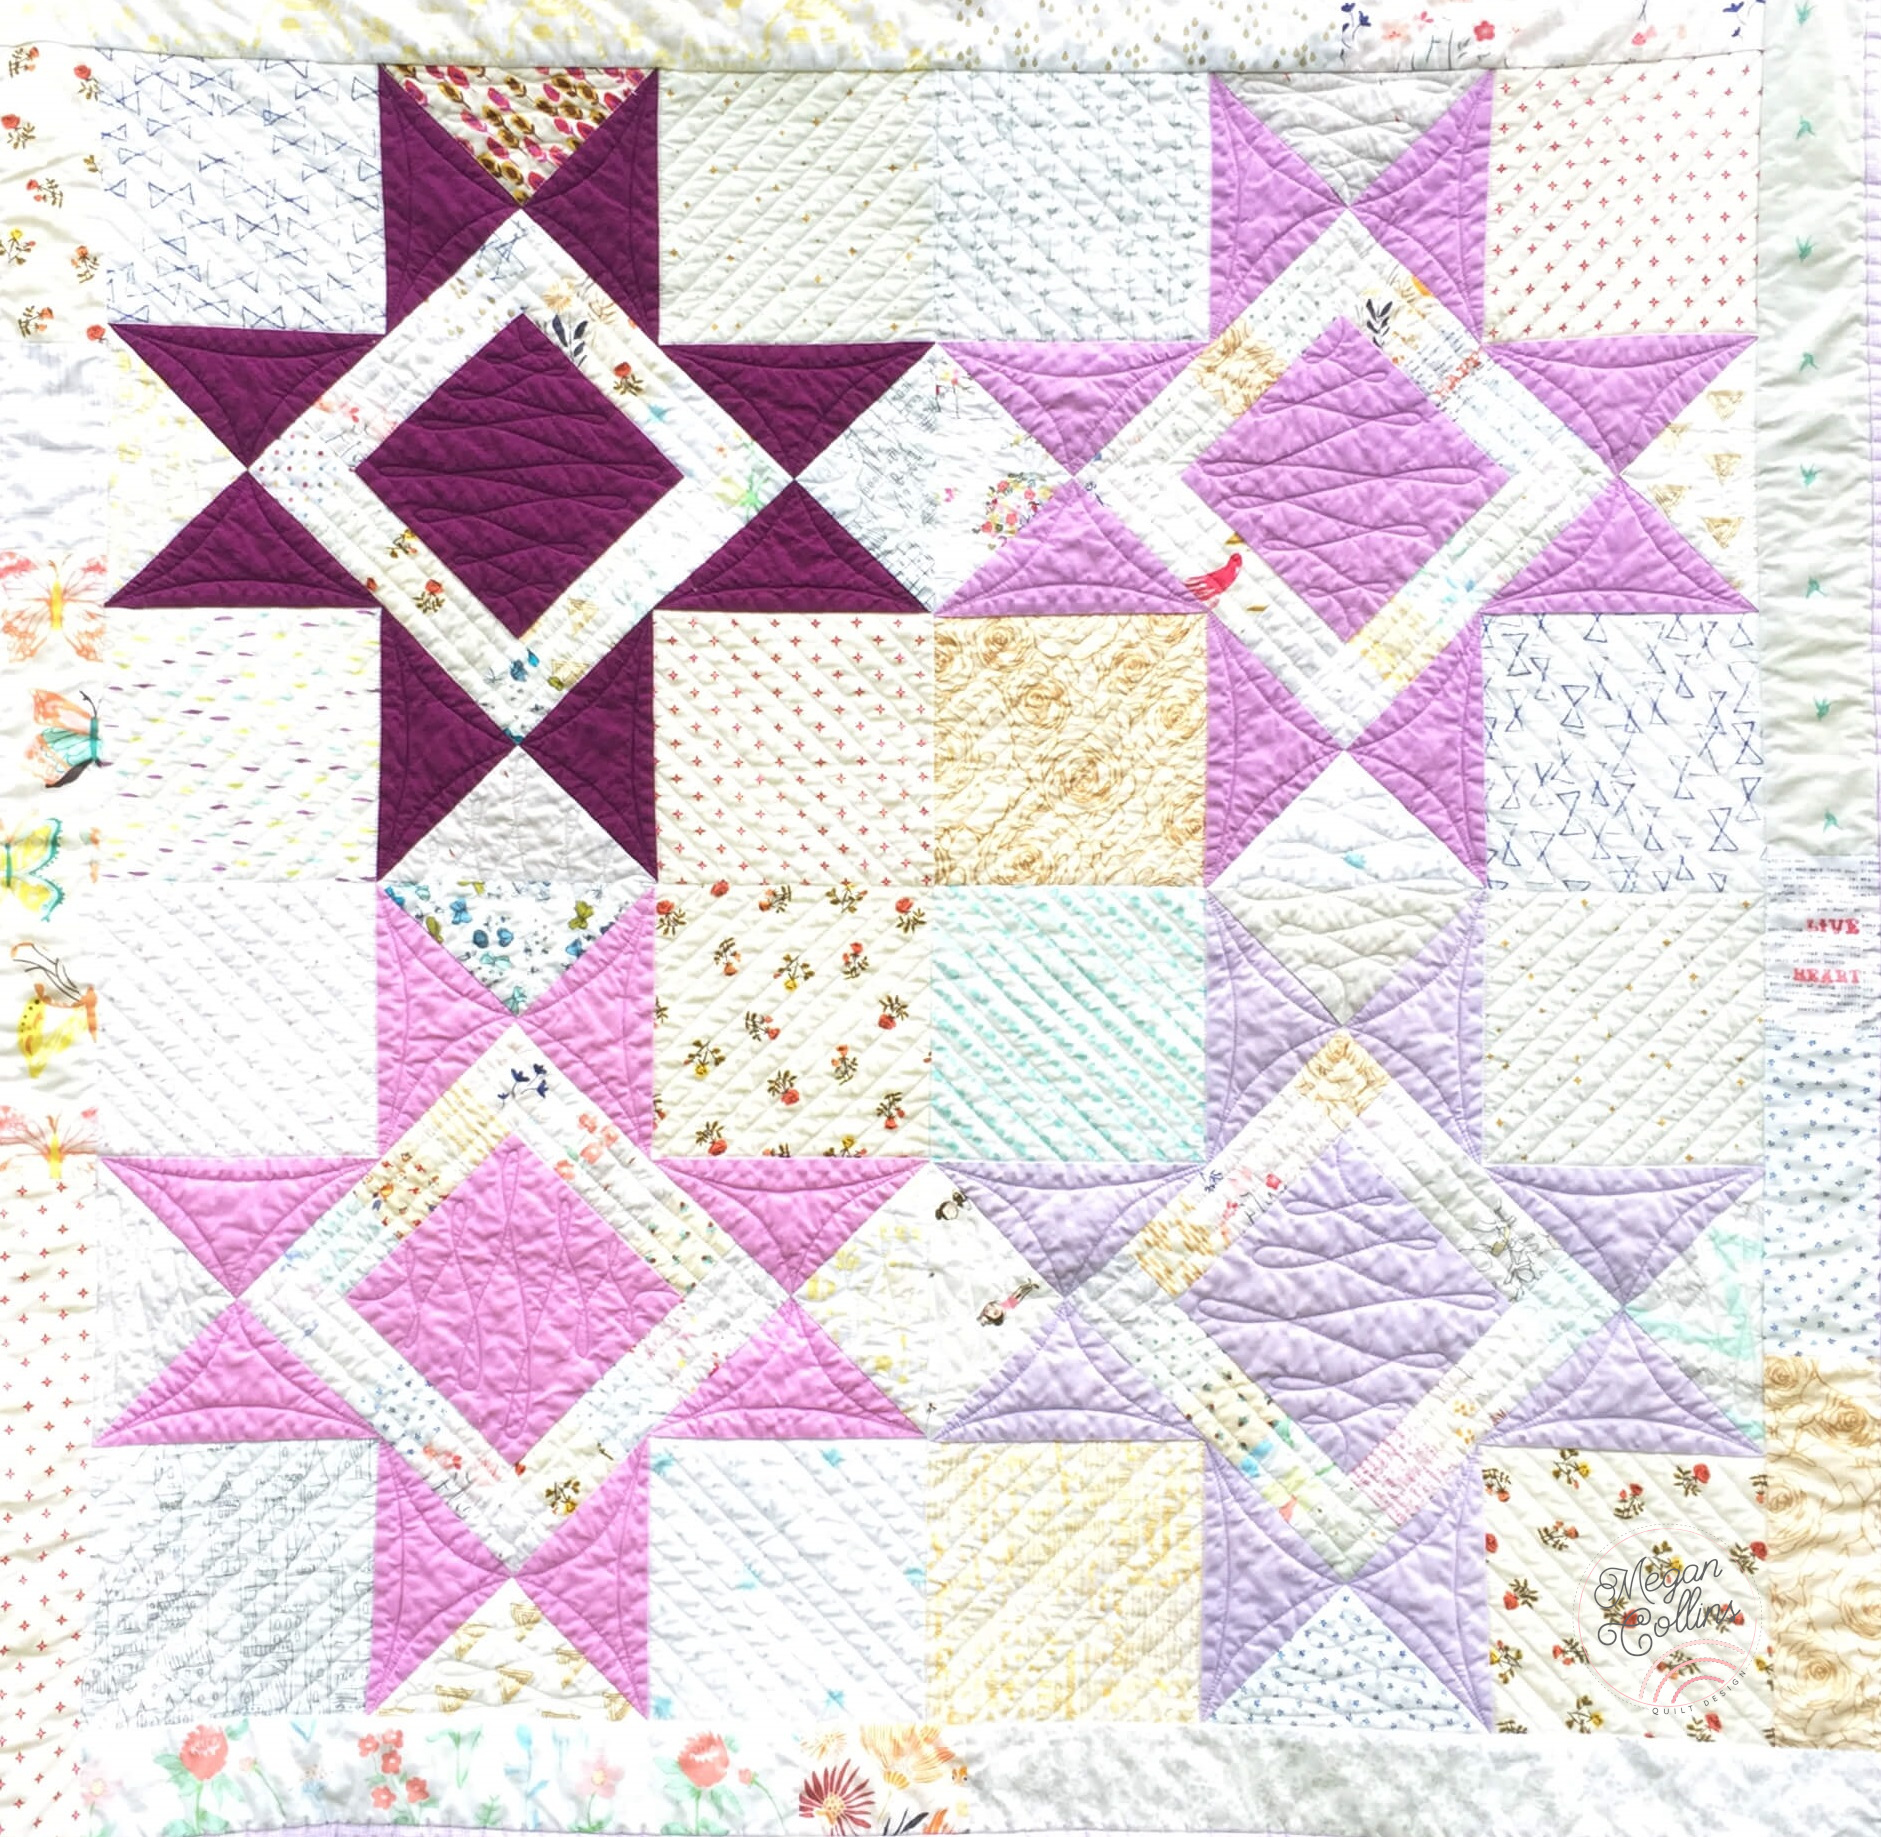 purple scrappy variable star quilt full view